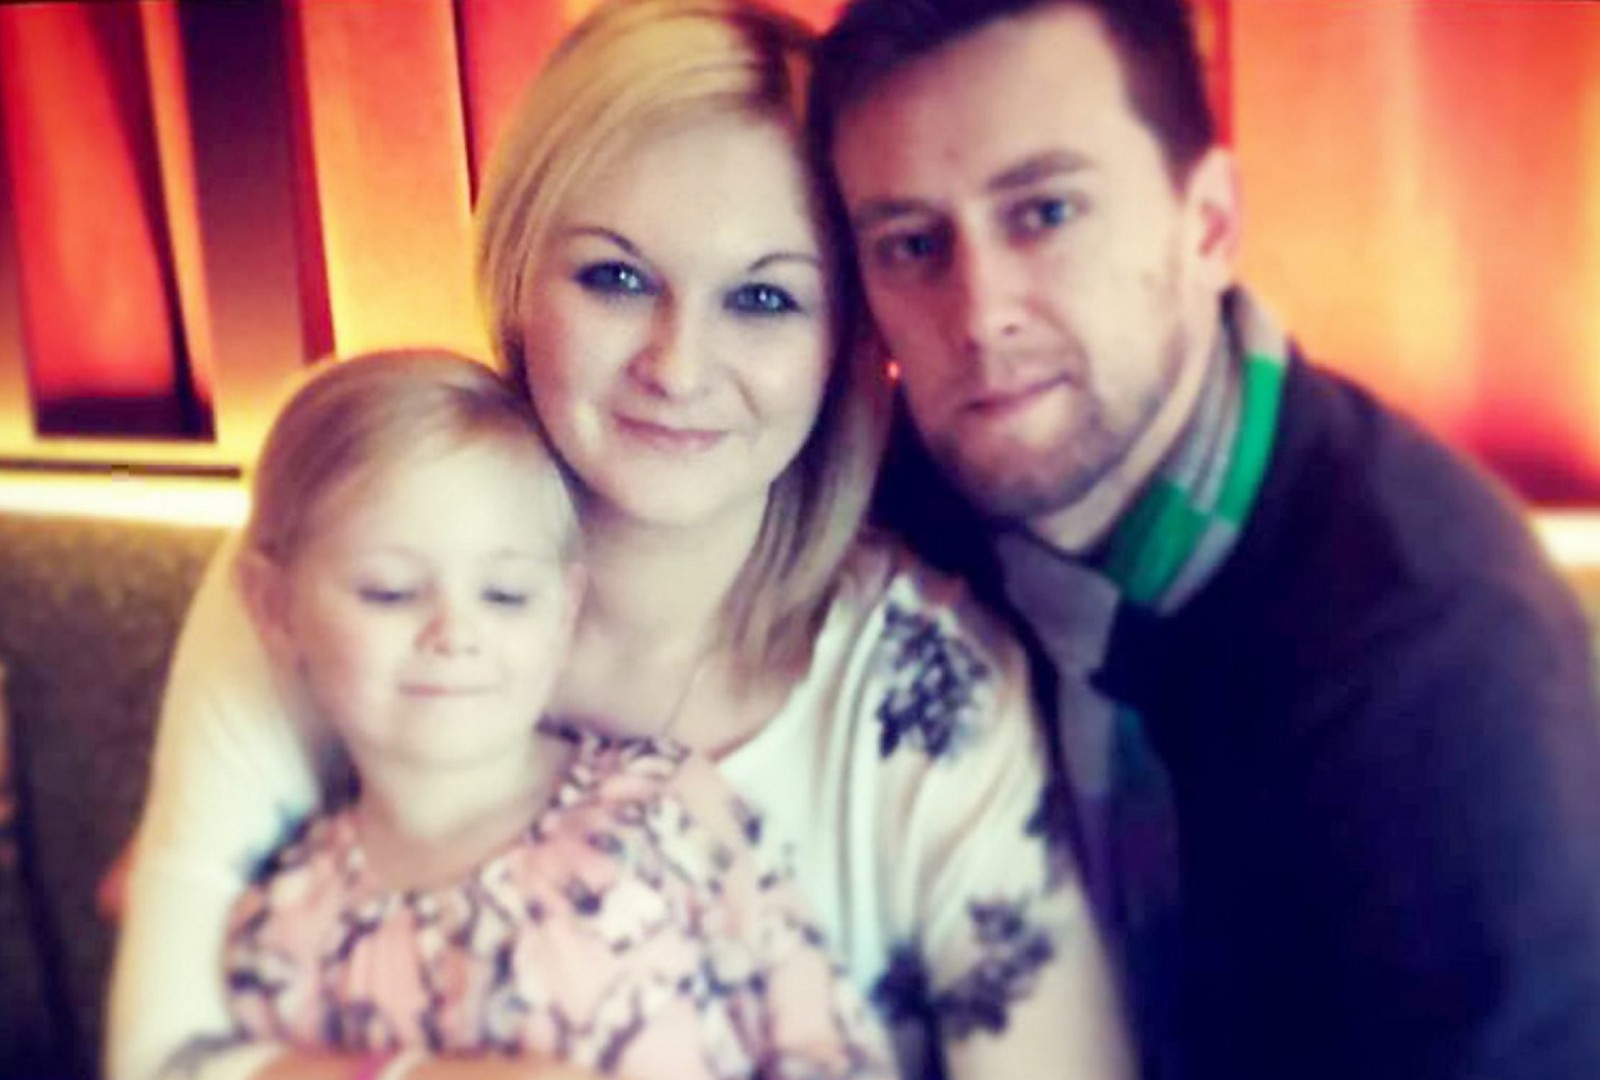 Devoted dad dies after raising £500k for daughter's cancer treatment